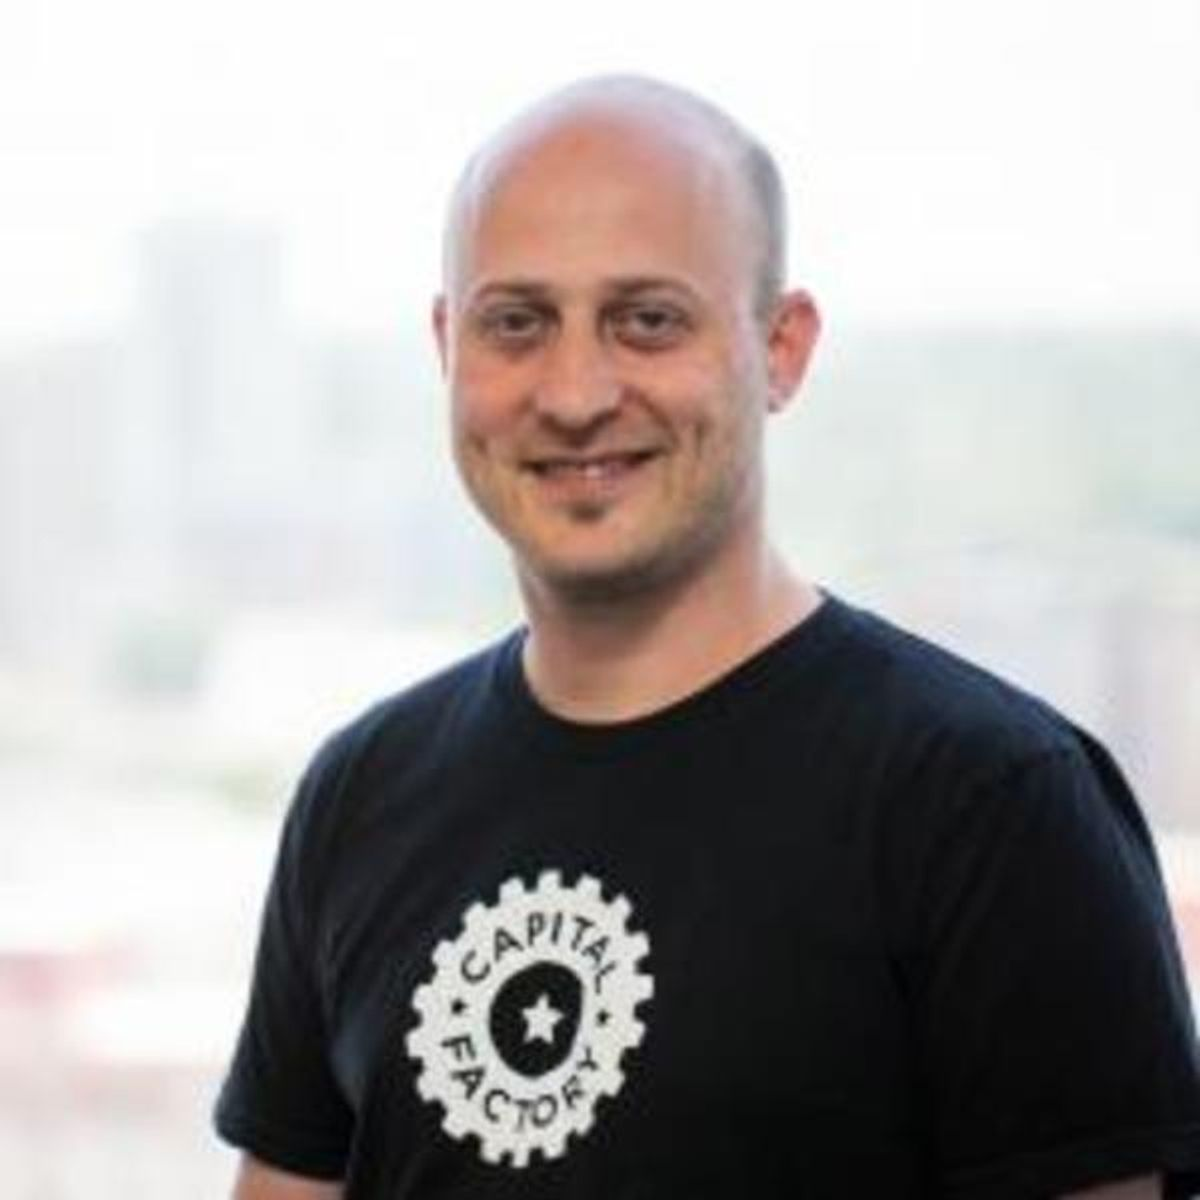 Photo of Joshua Baer, Managing Partner at Capital Factory